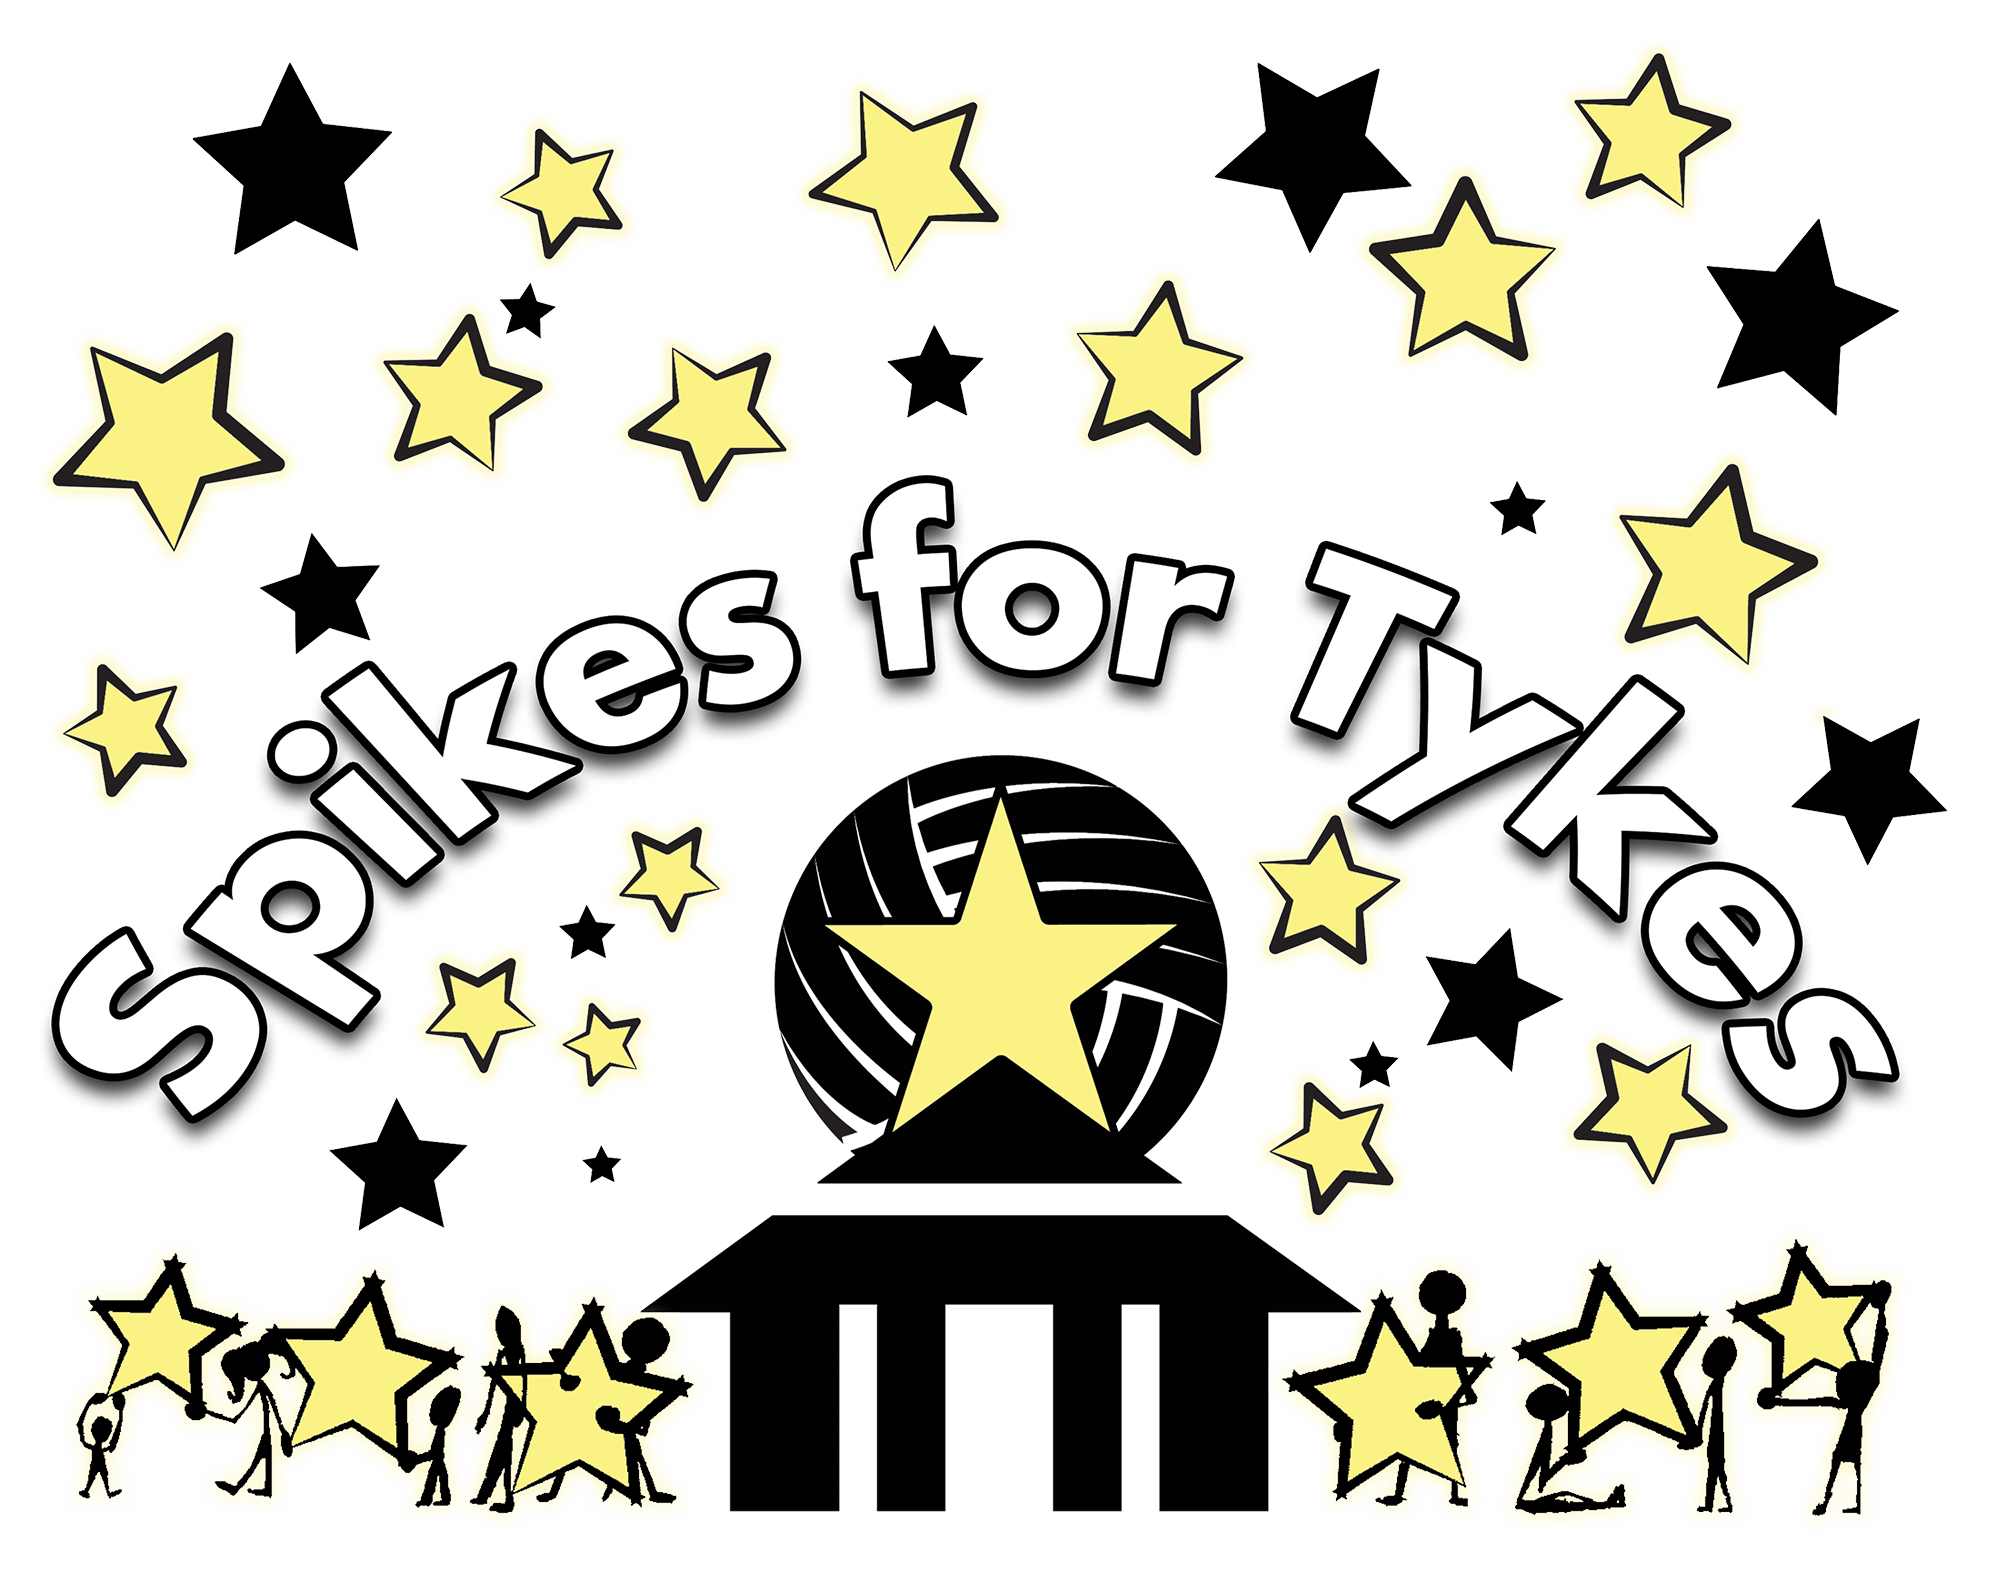 https://spikesfortykes.org/wp-content/uploads/2017/10/Spikes2017-Logo.png